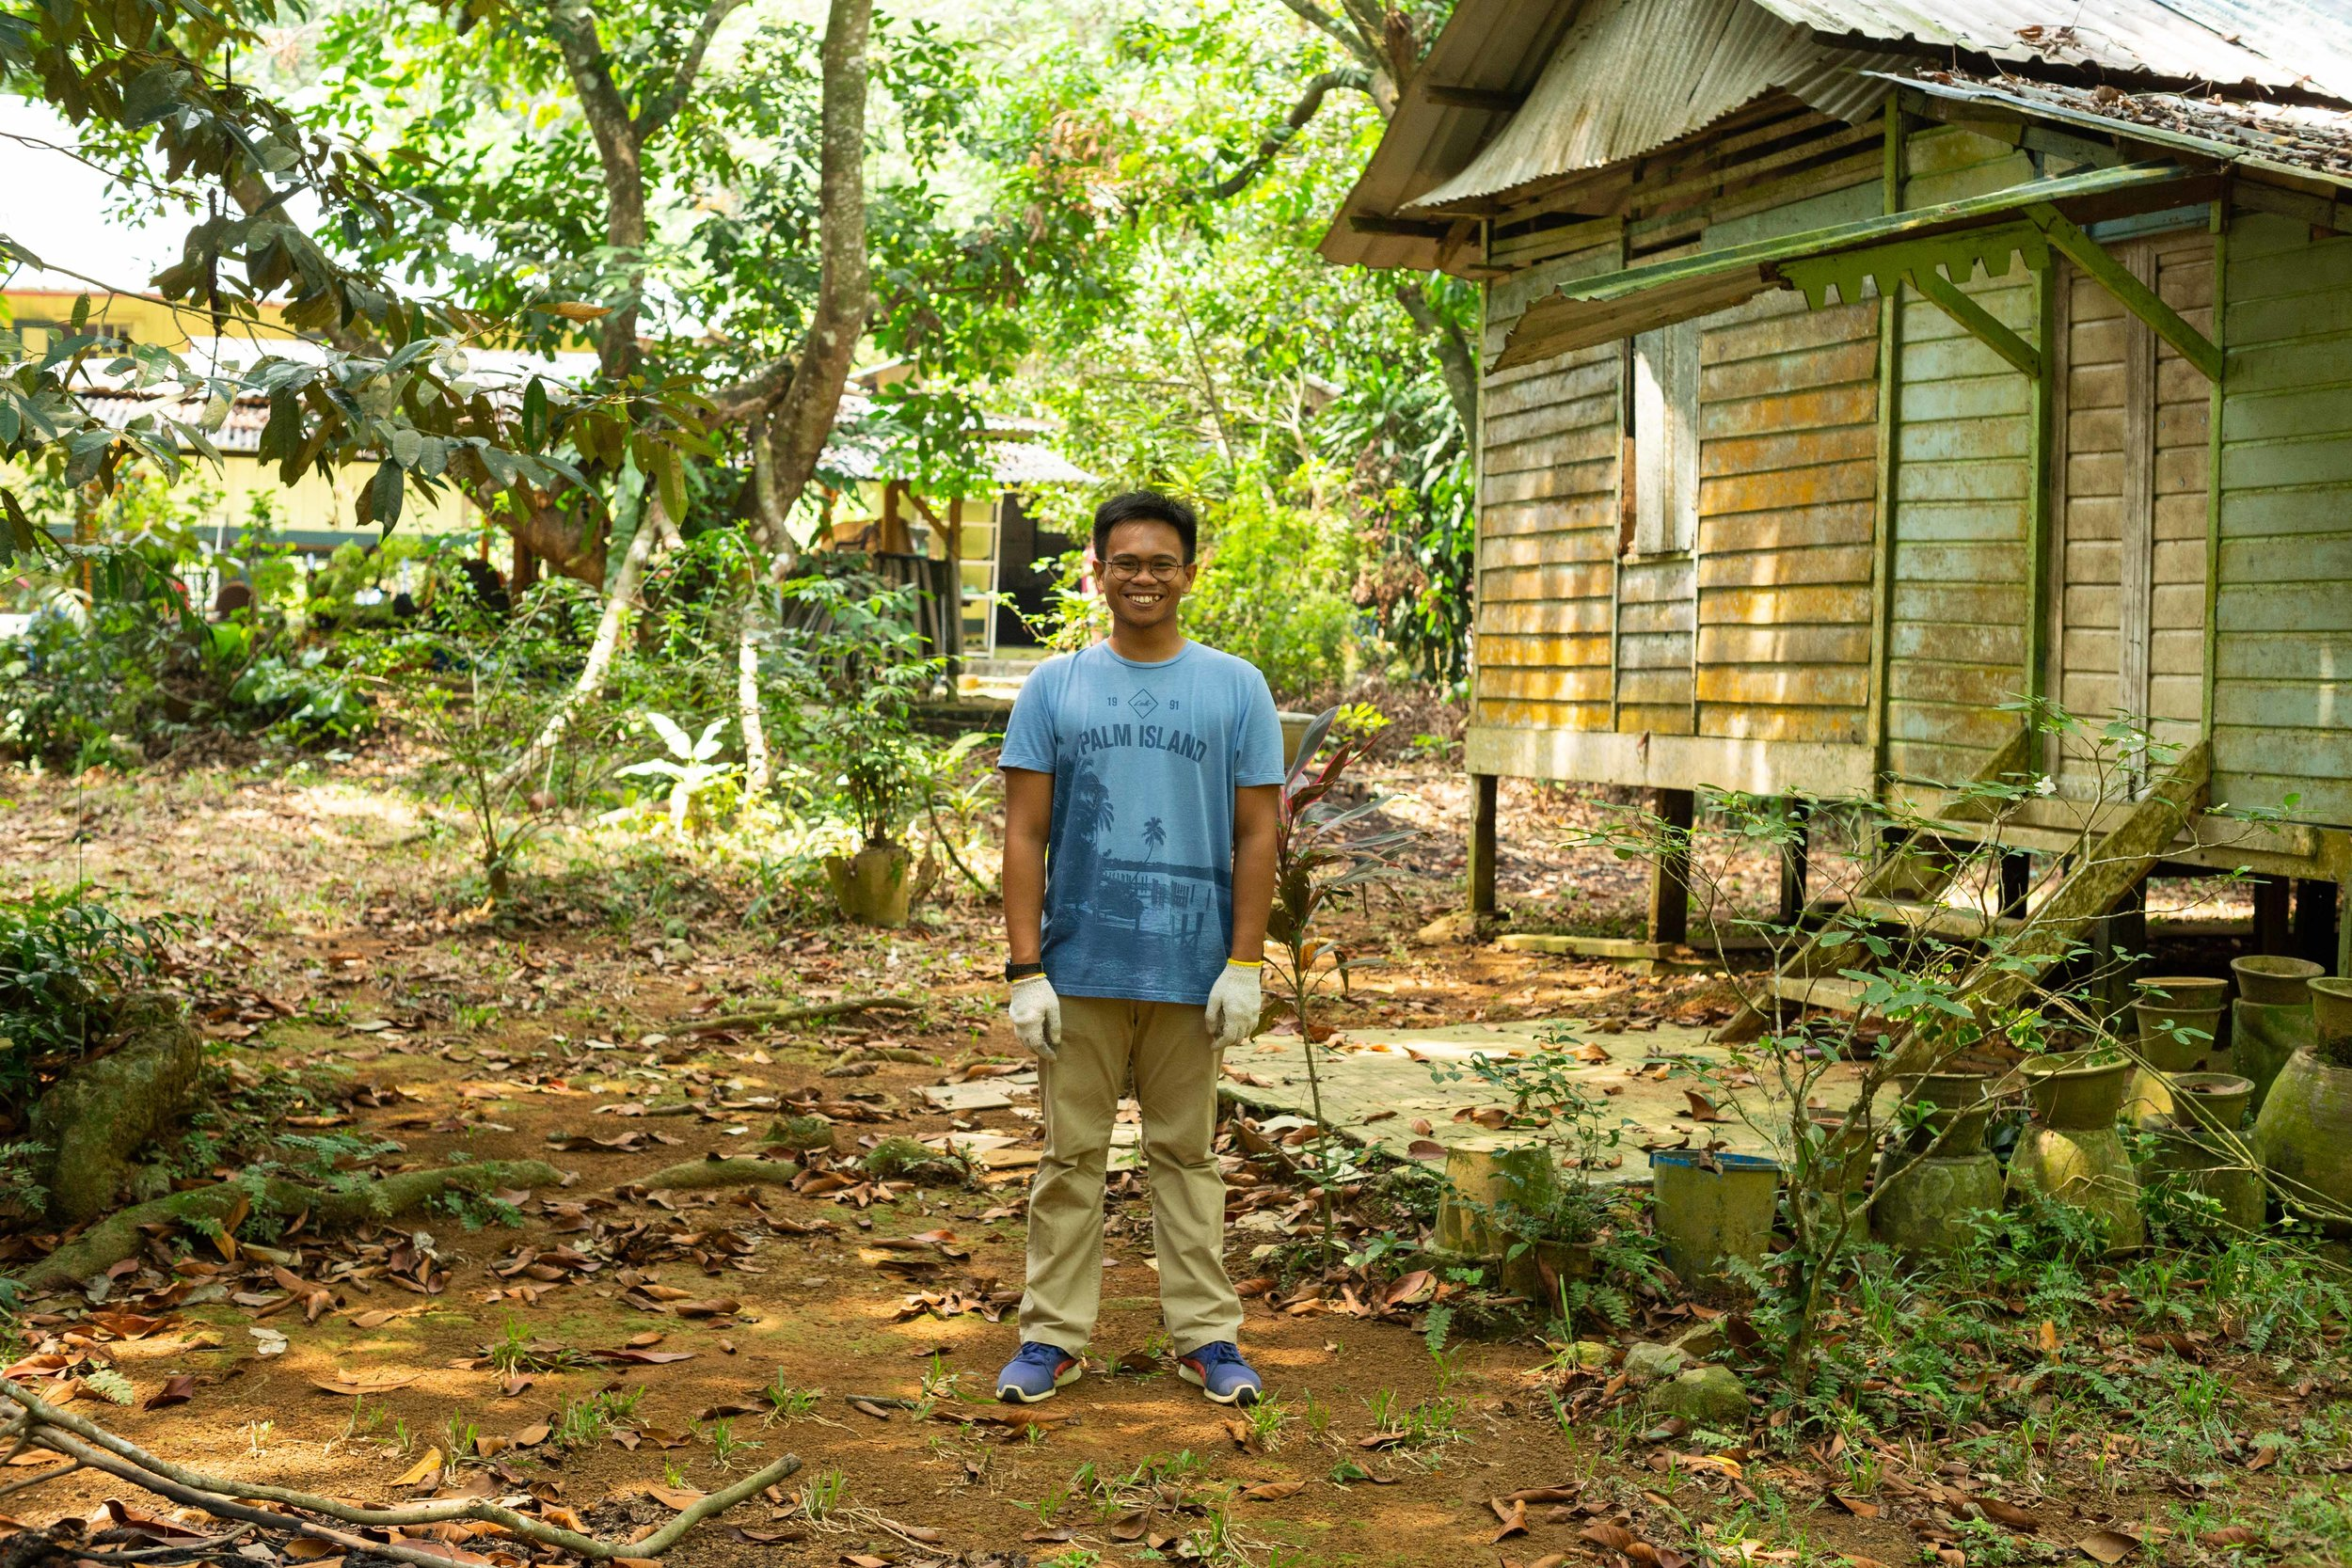 Wan standing outside a house, see image below for the 'before' image